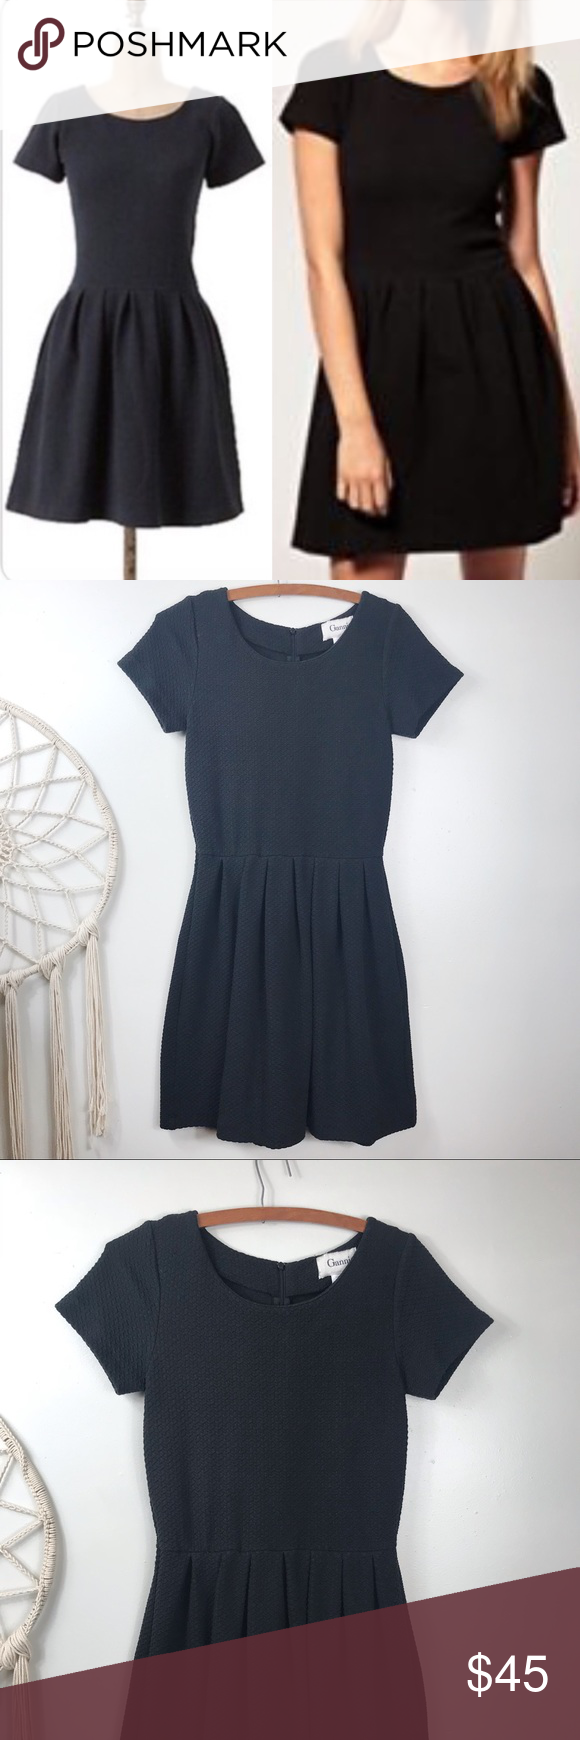 7f6ee7d6 Anthropologie Ganni Embossed Basket Dress Anthropologie Ganni Black Fit & Flare  Dress Textured black fabric. Back zip. Thick stretchy fabric. Size medium.